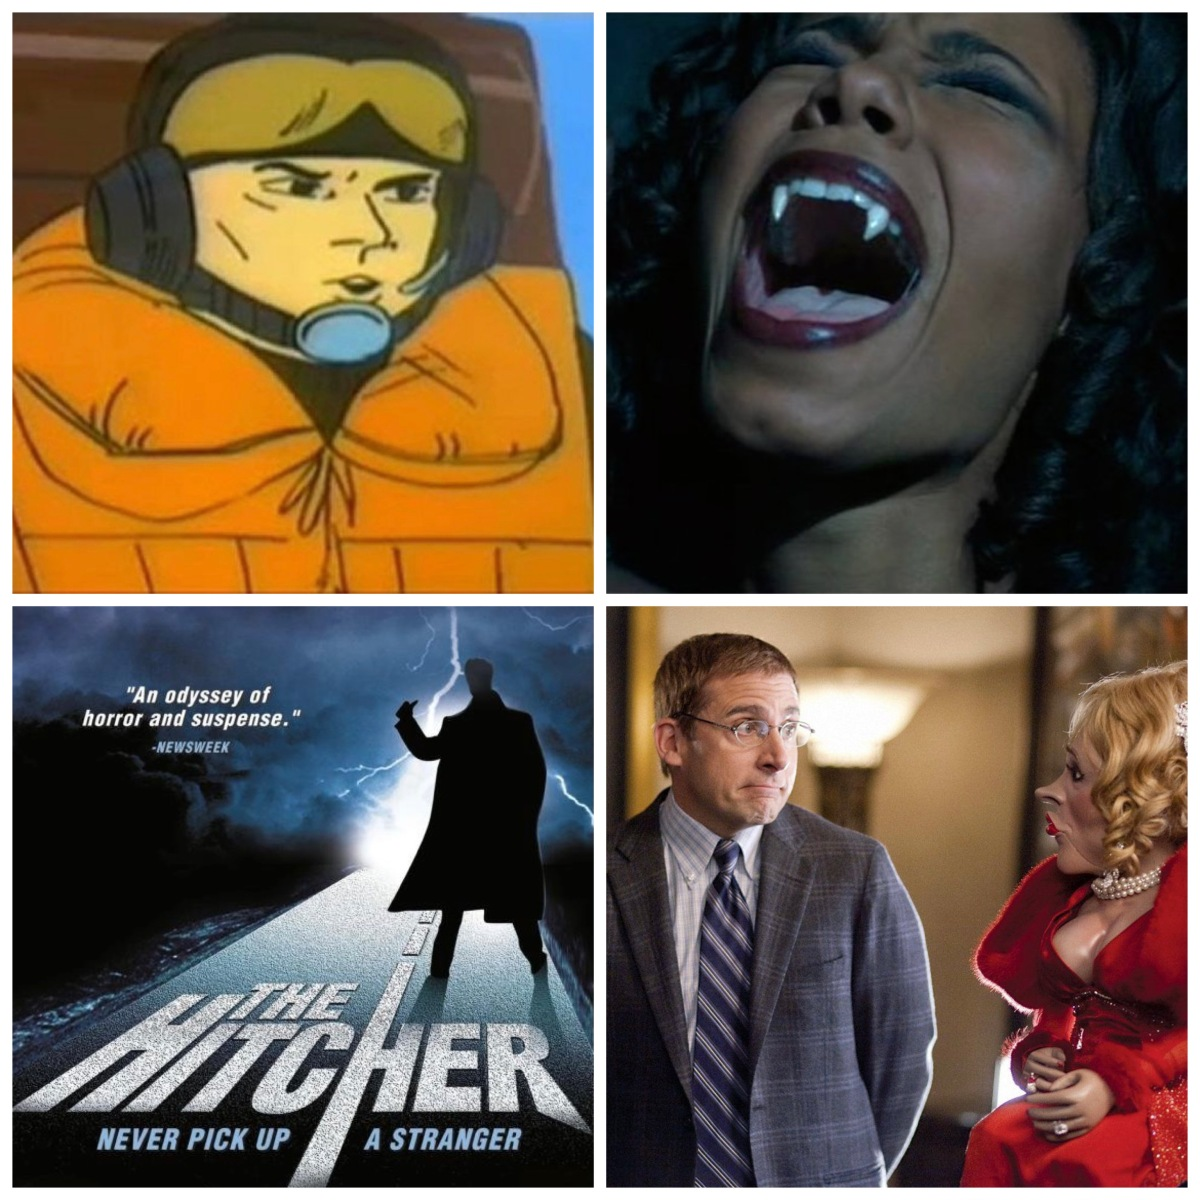 Chopper Dave from Sealab 2021, Blade's mom, The Hitcher, and Dinner For Schmucks.